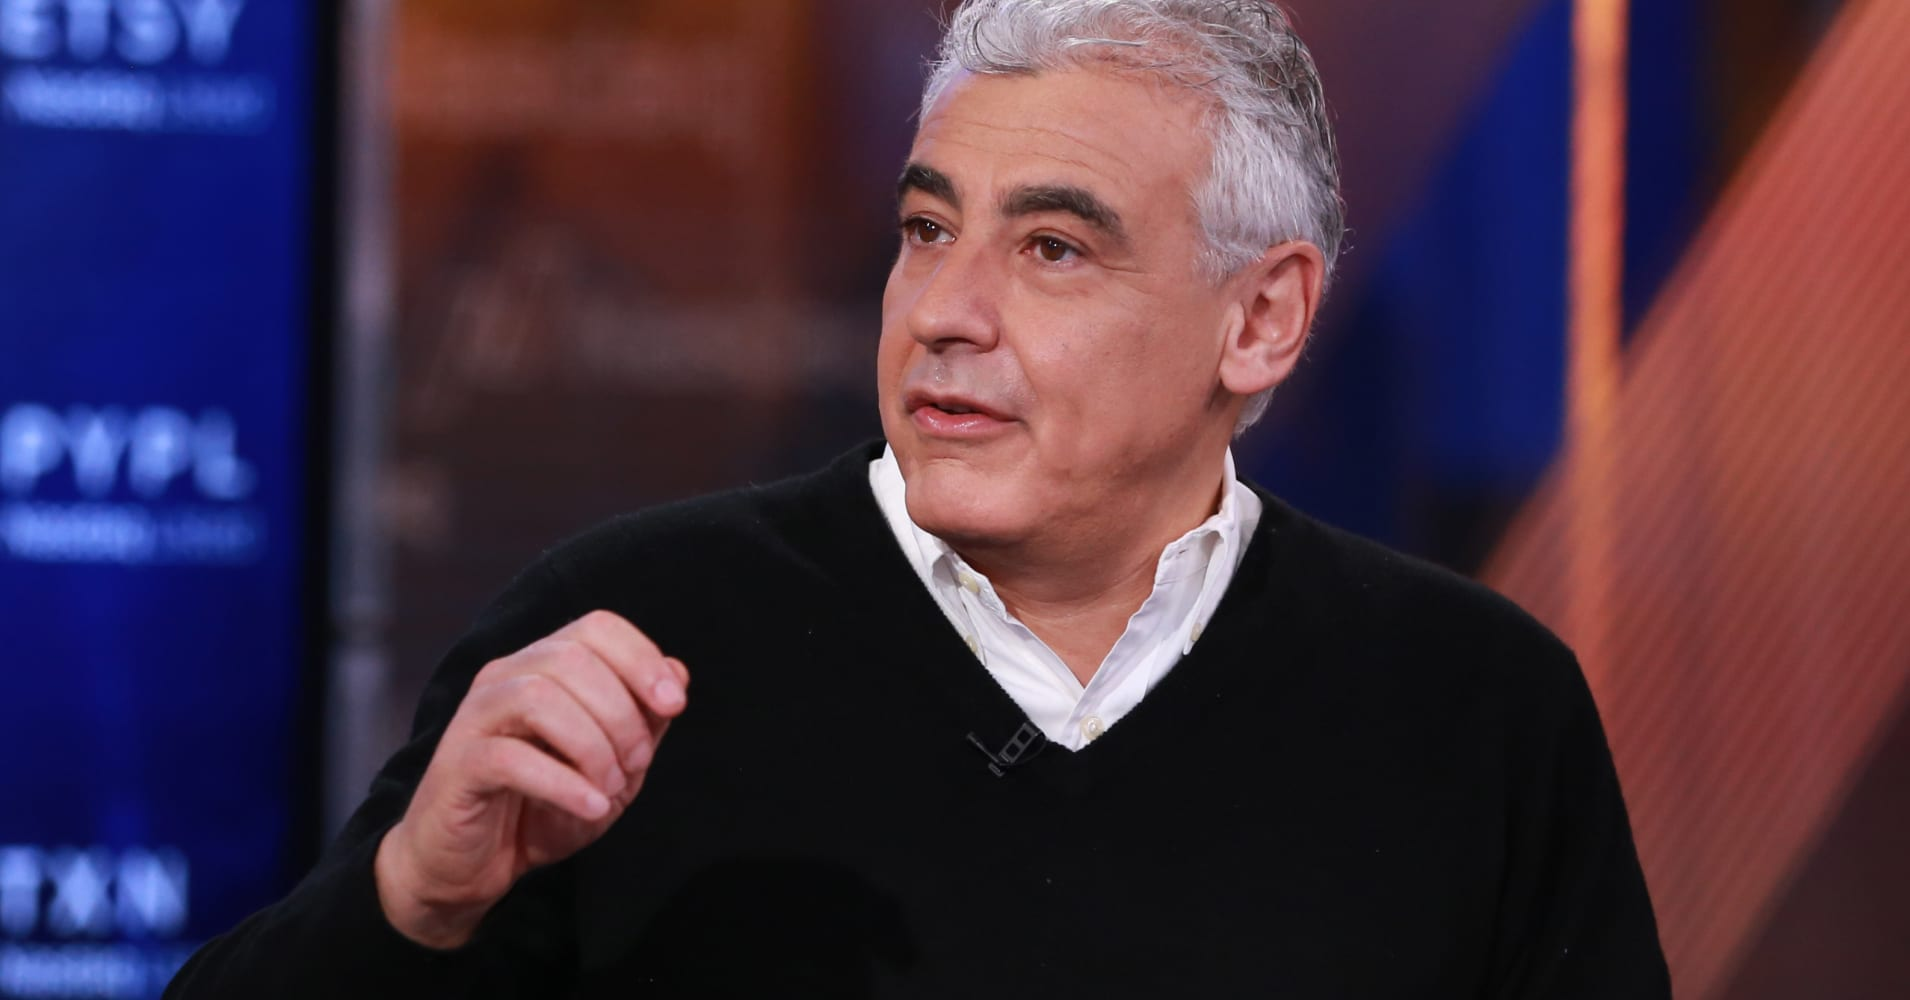 Marc Lasry: Don't bet on what's fueling the Trump rally